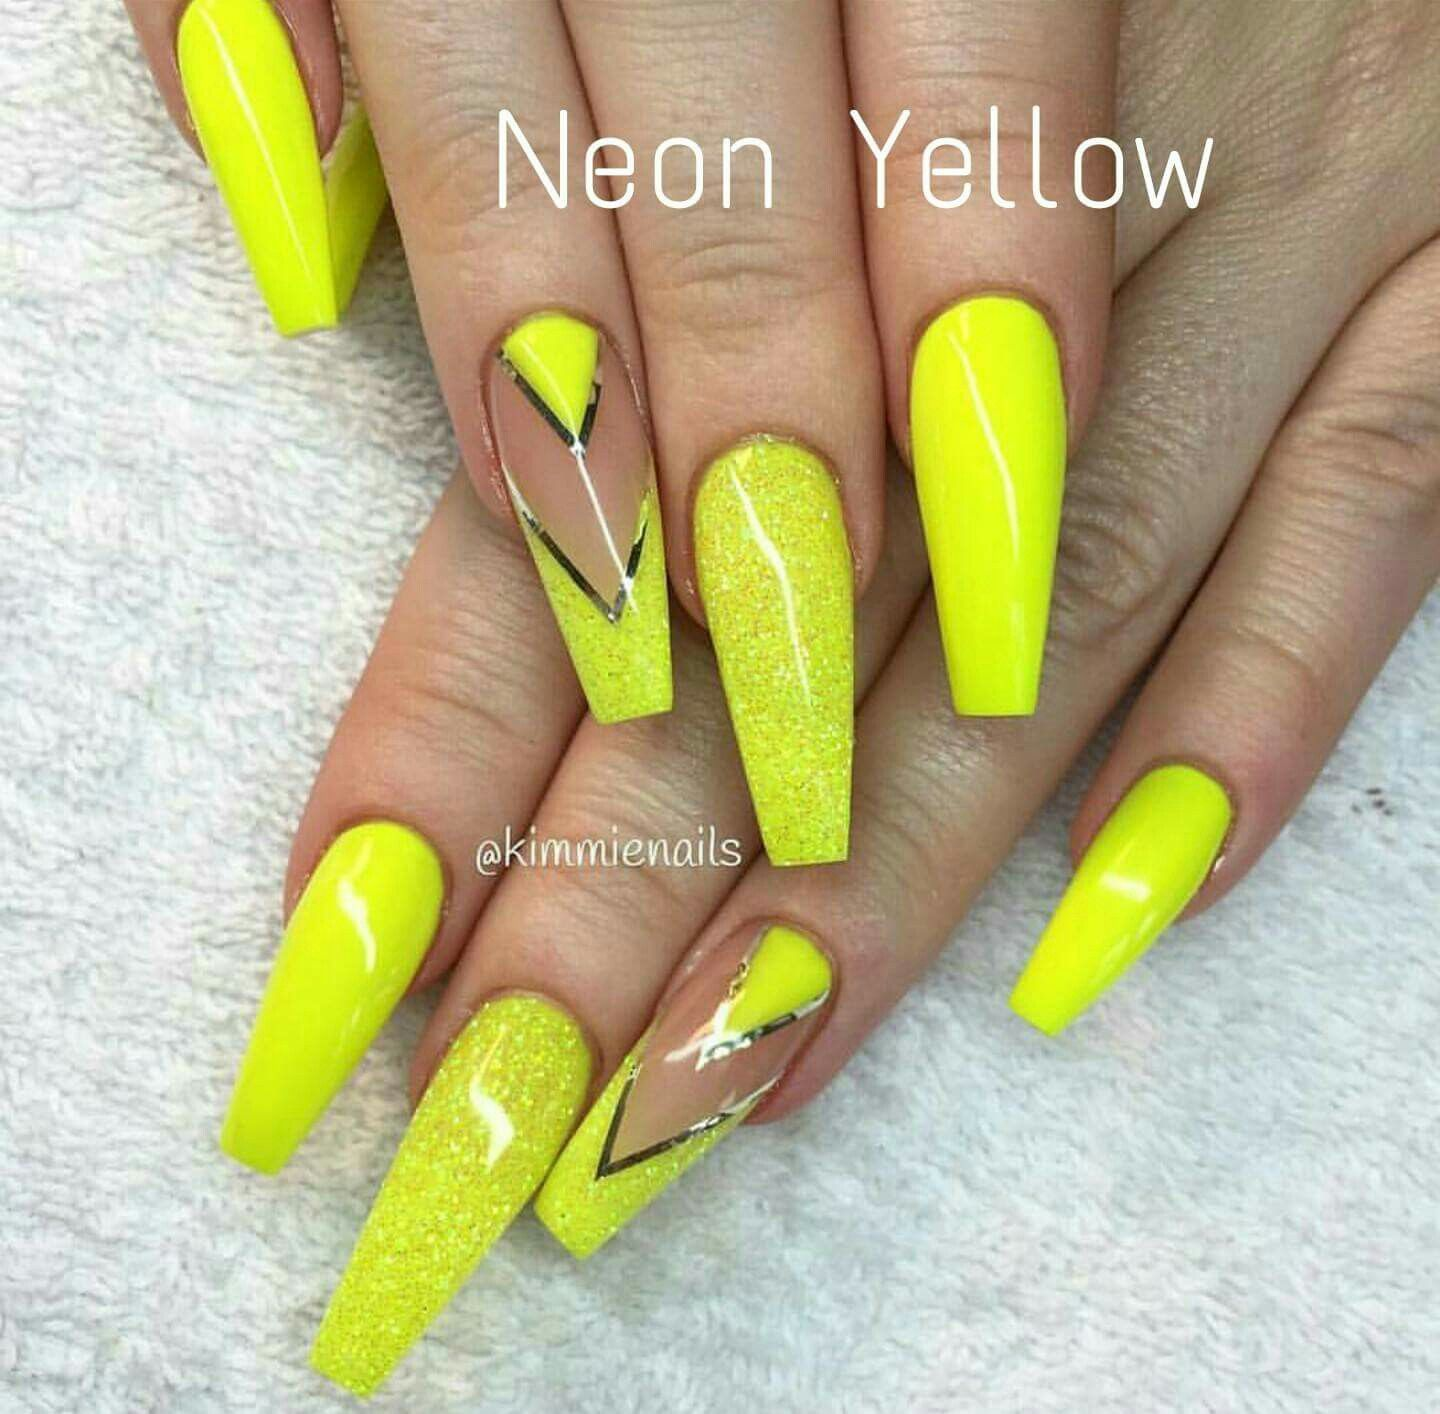 Pin by Angie💖 on Lilly Nails♡SolinsNaglar | Pinterest